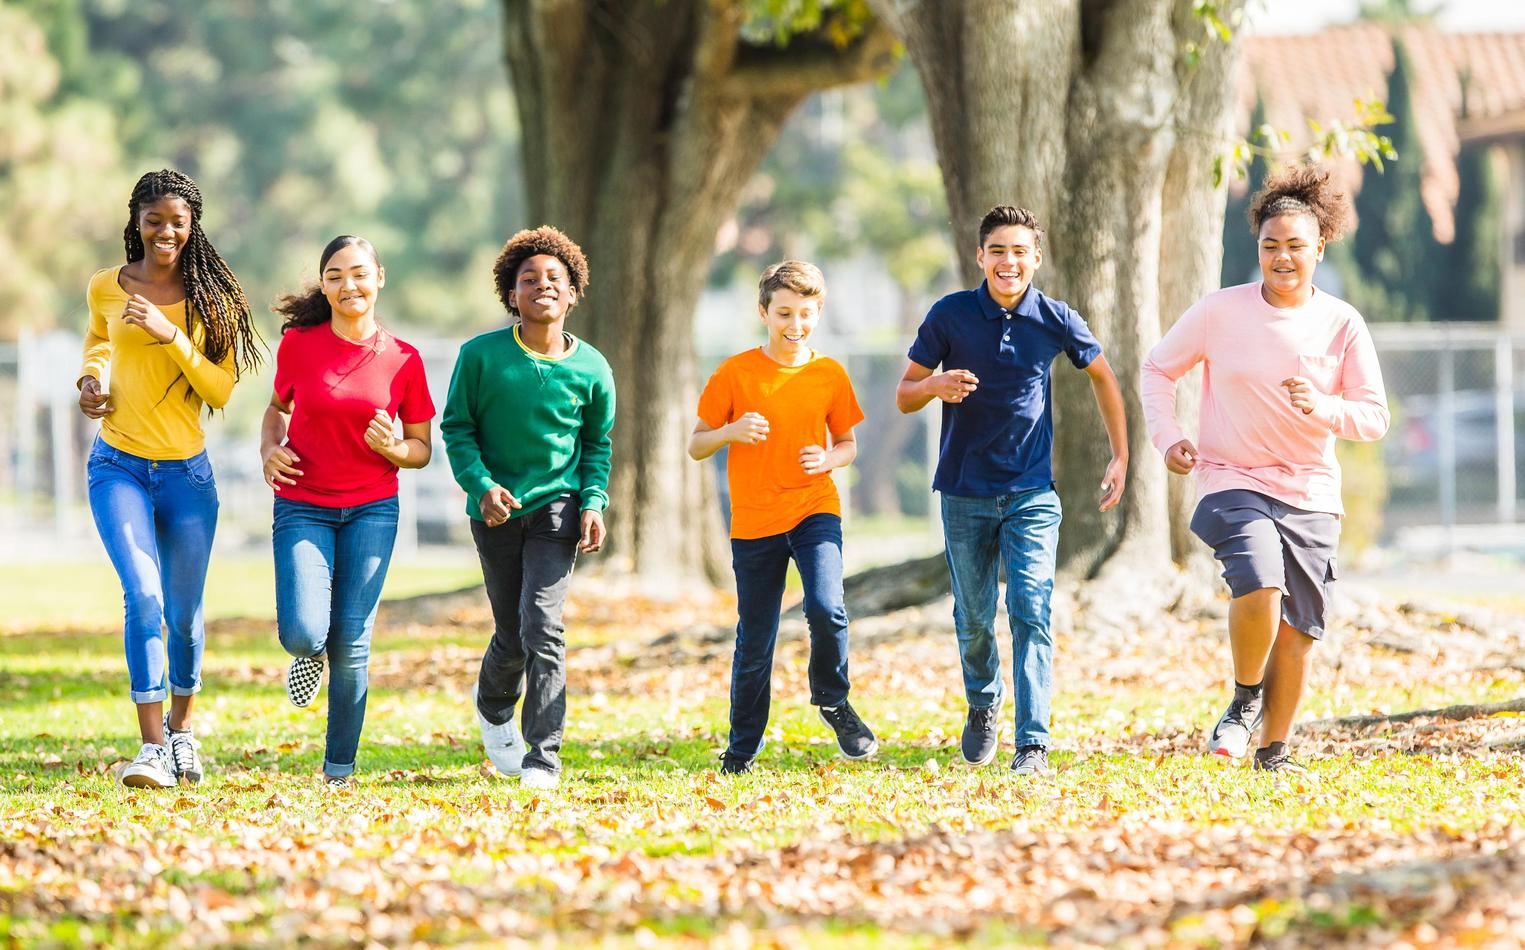 A group of middle school students running on a field covered with fallen leaves.